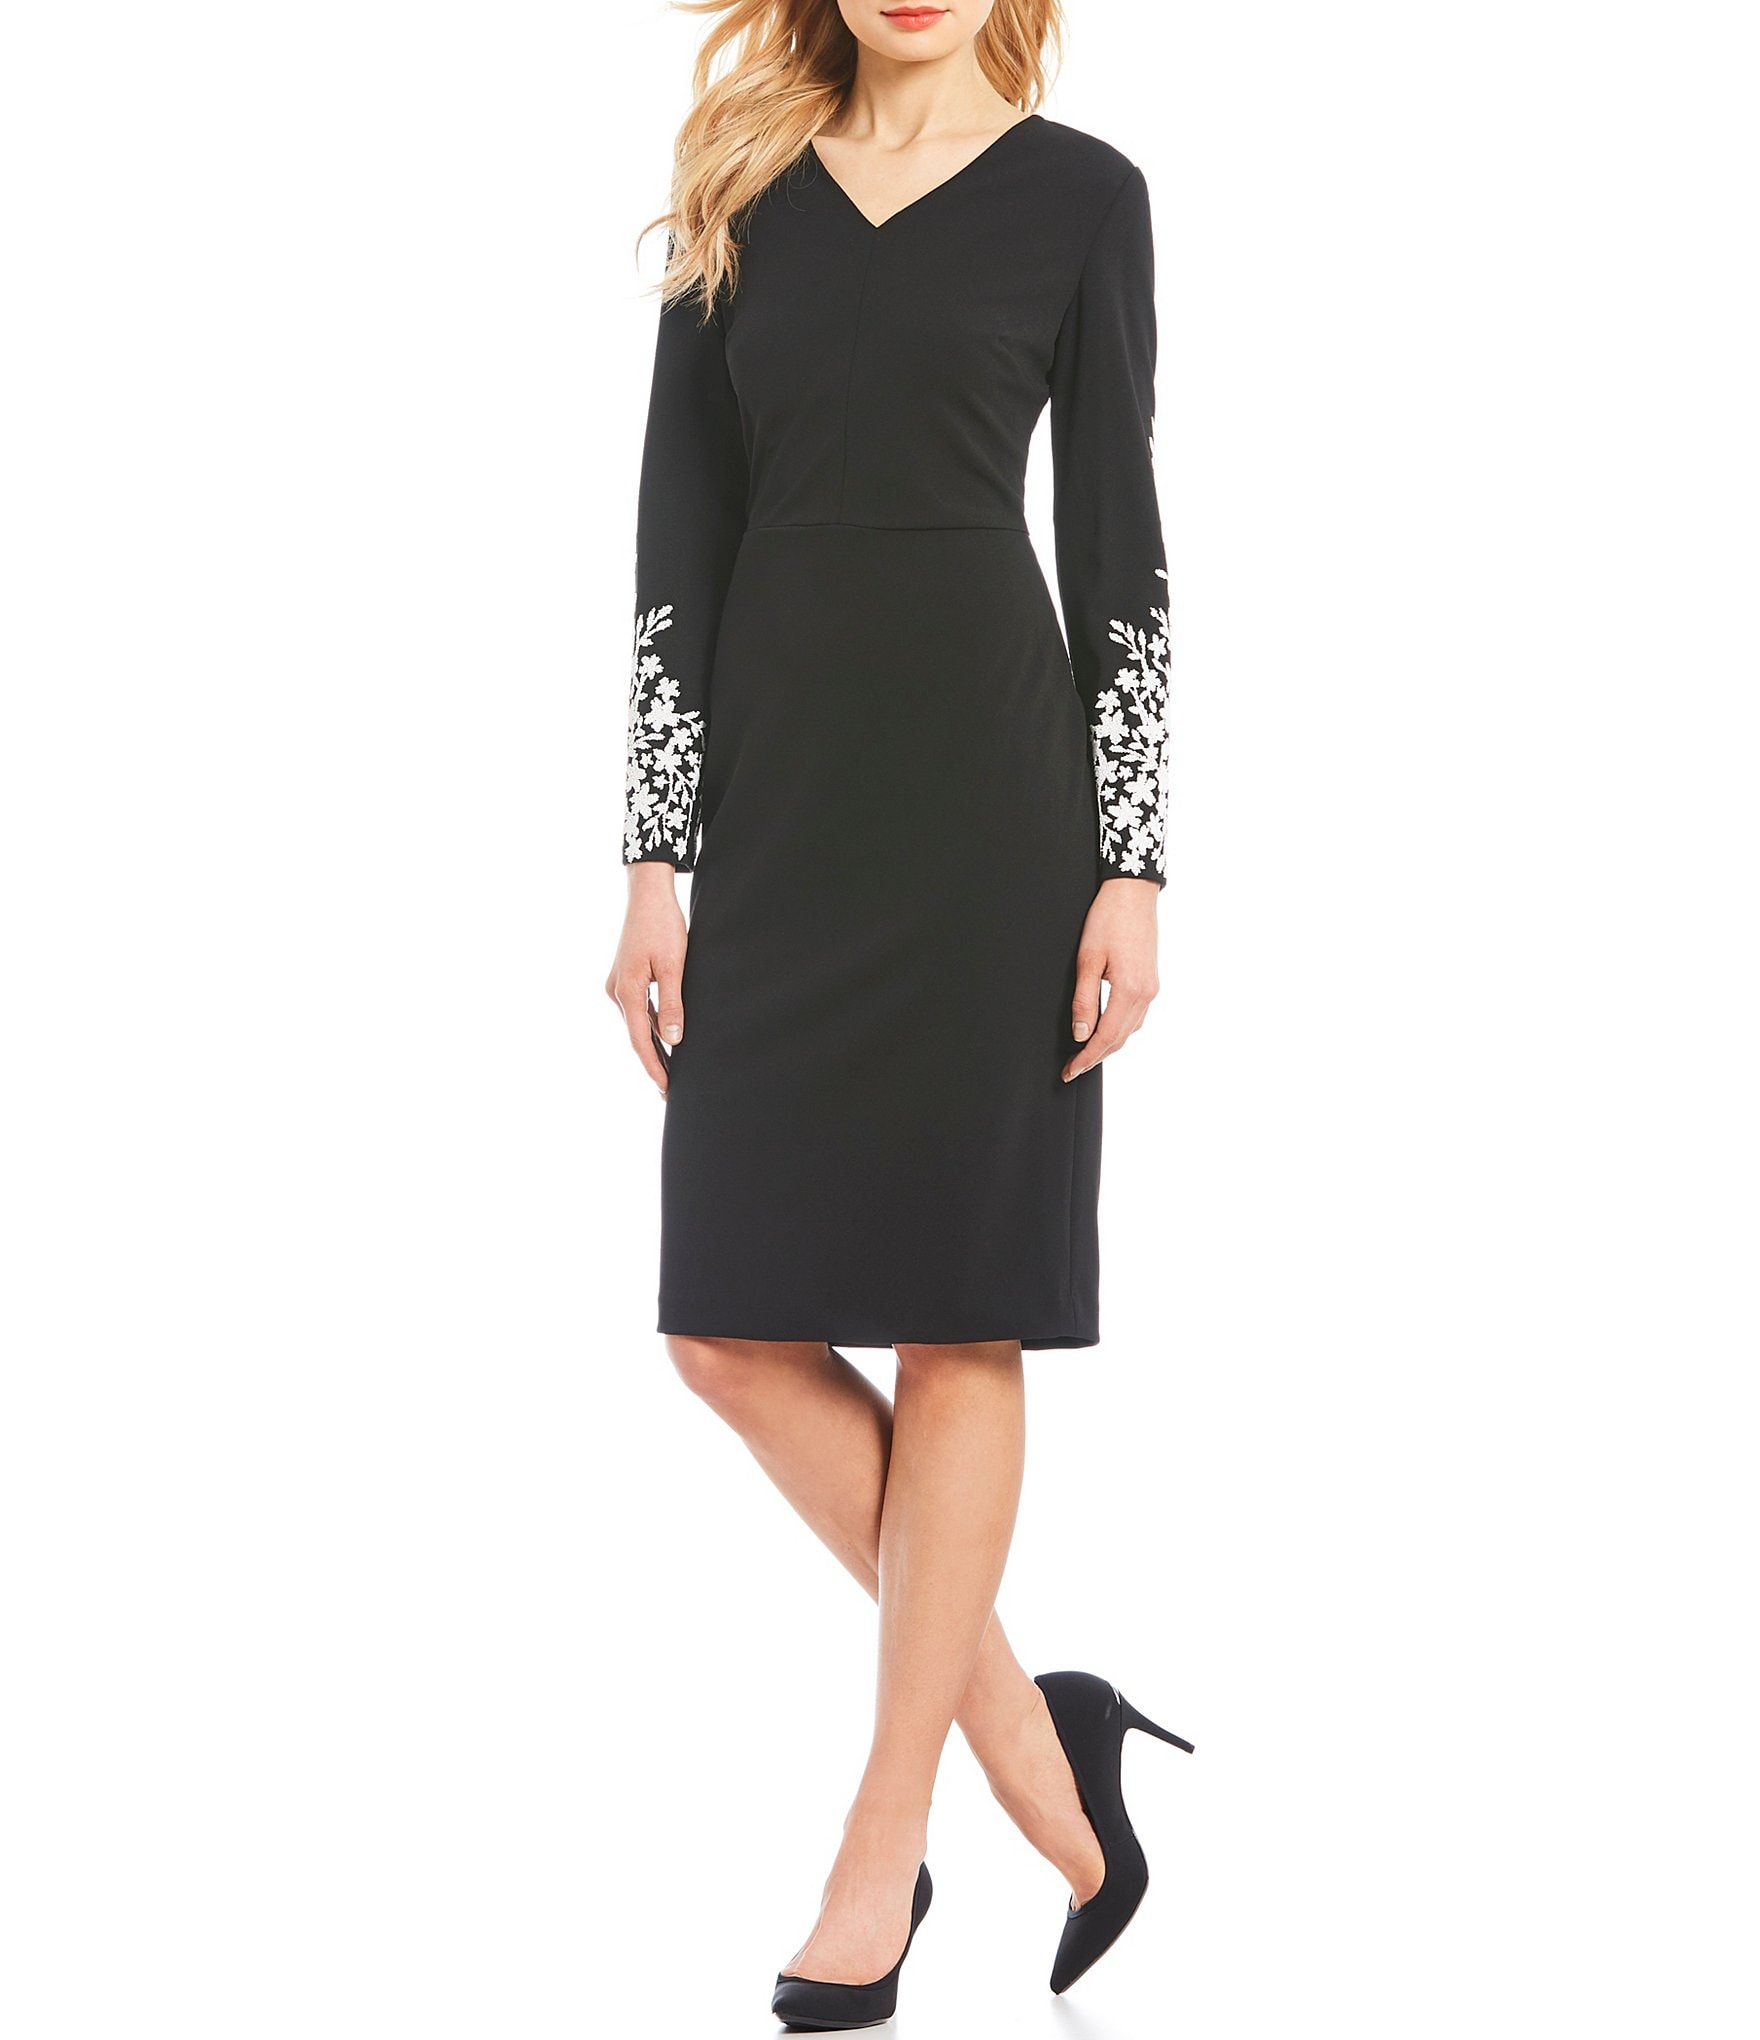 690cfa3a28 Women s Daytime   Casual Dresses